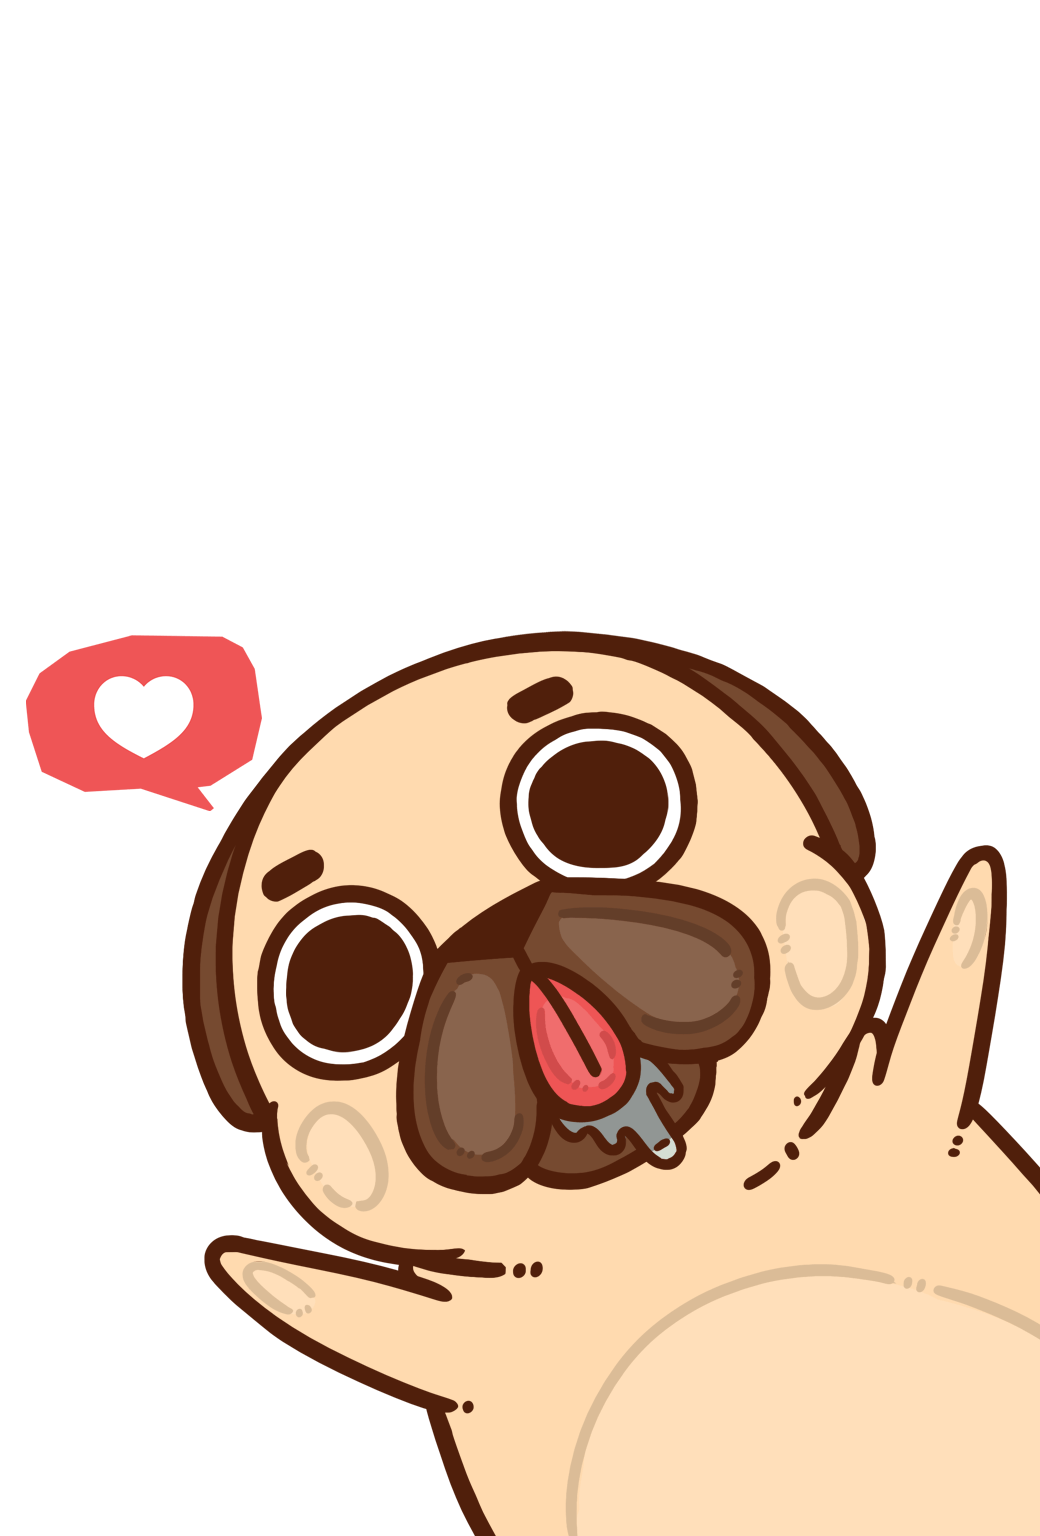 Puglie Pug — Download an iPhone or Android wallpaper here!